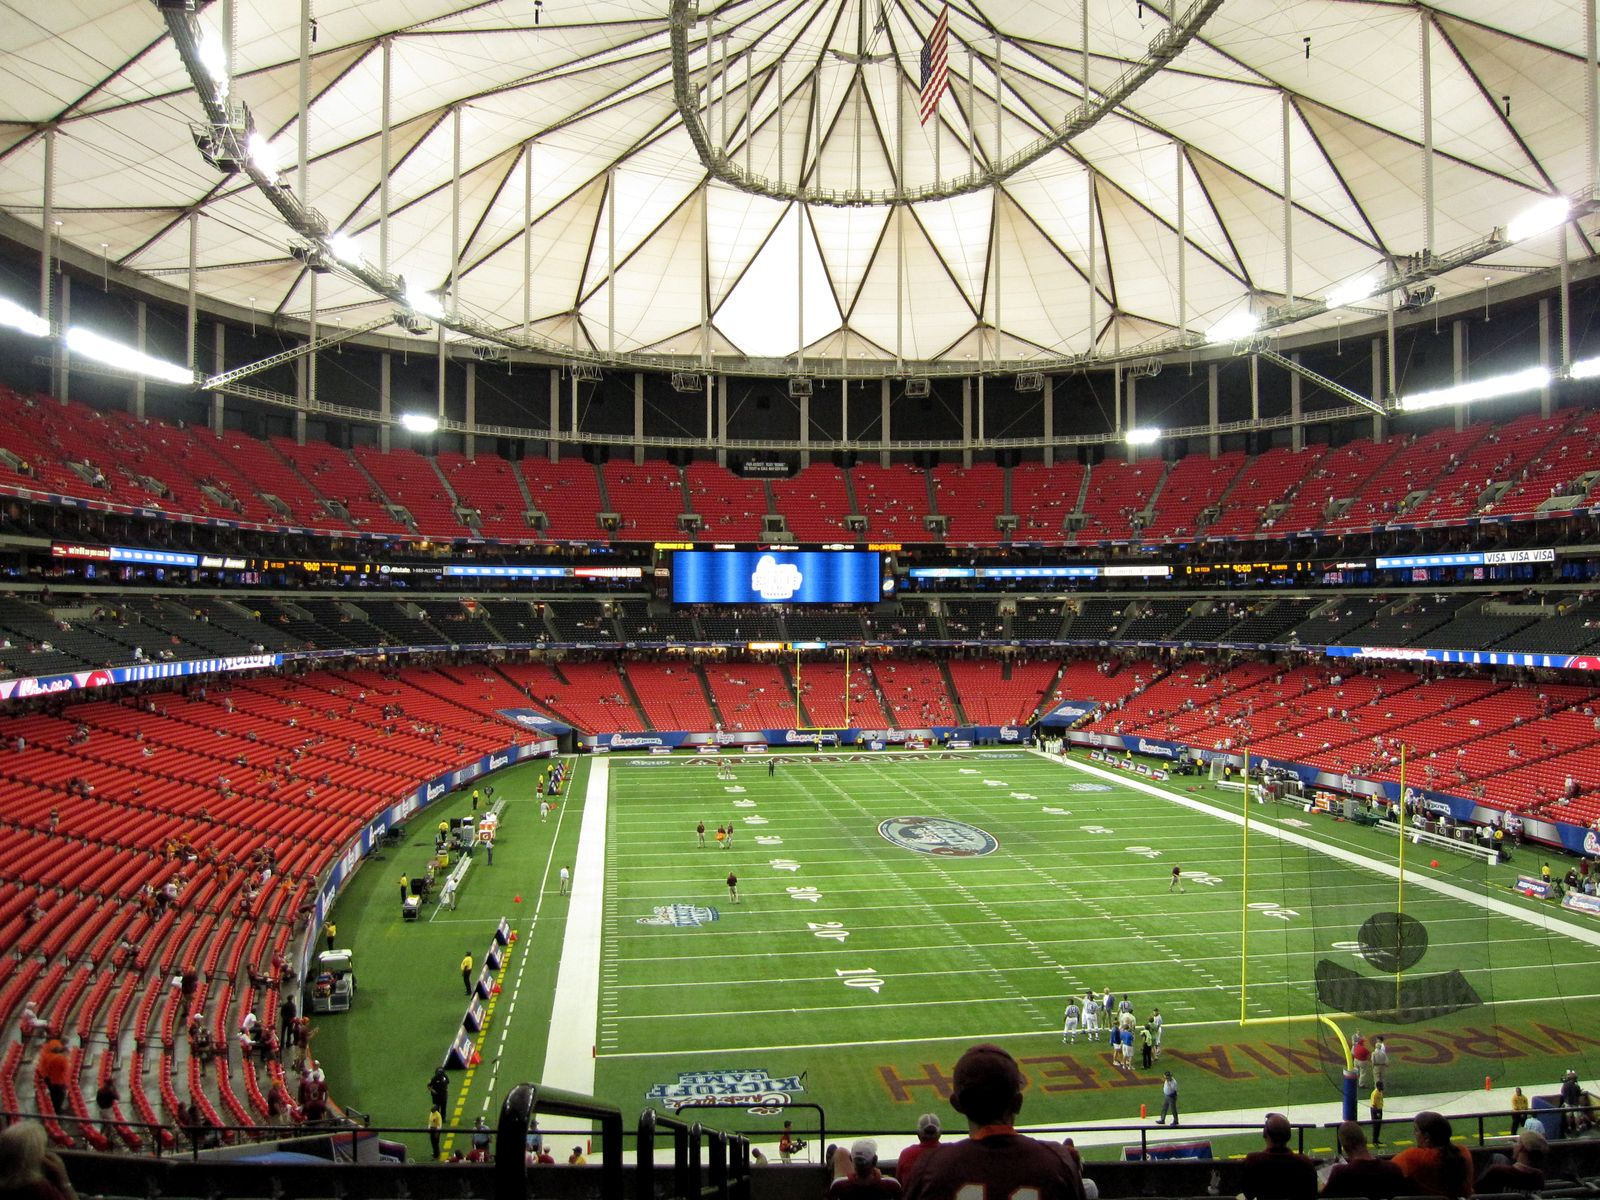 Georgia Stadium Demolition >> Georgia Dome – StadiumDB.com